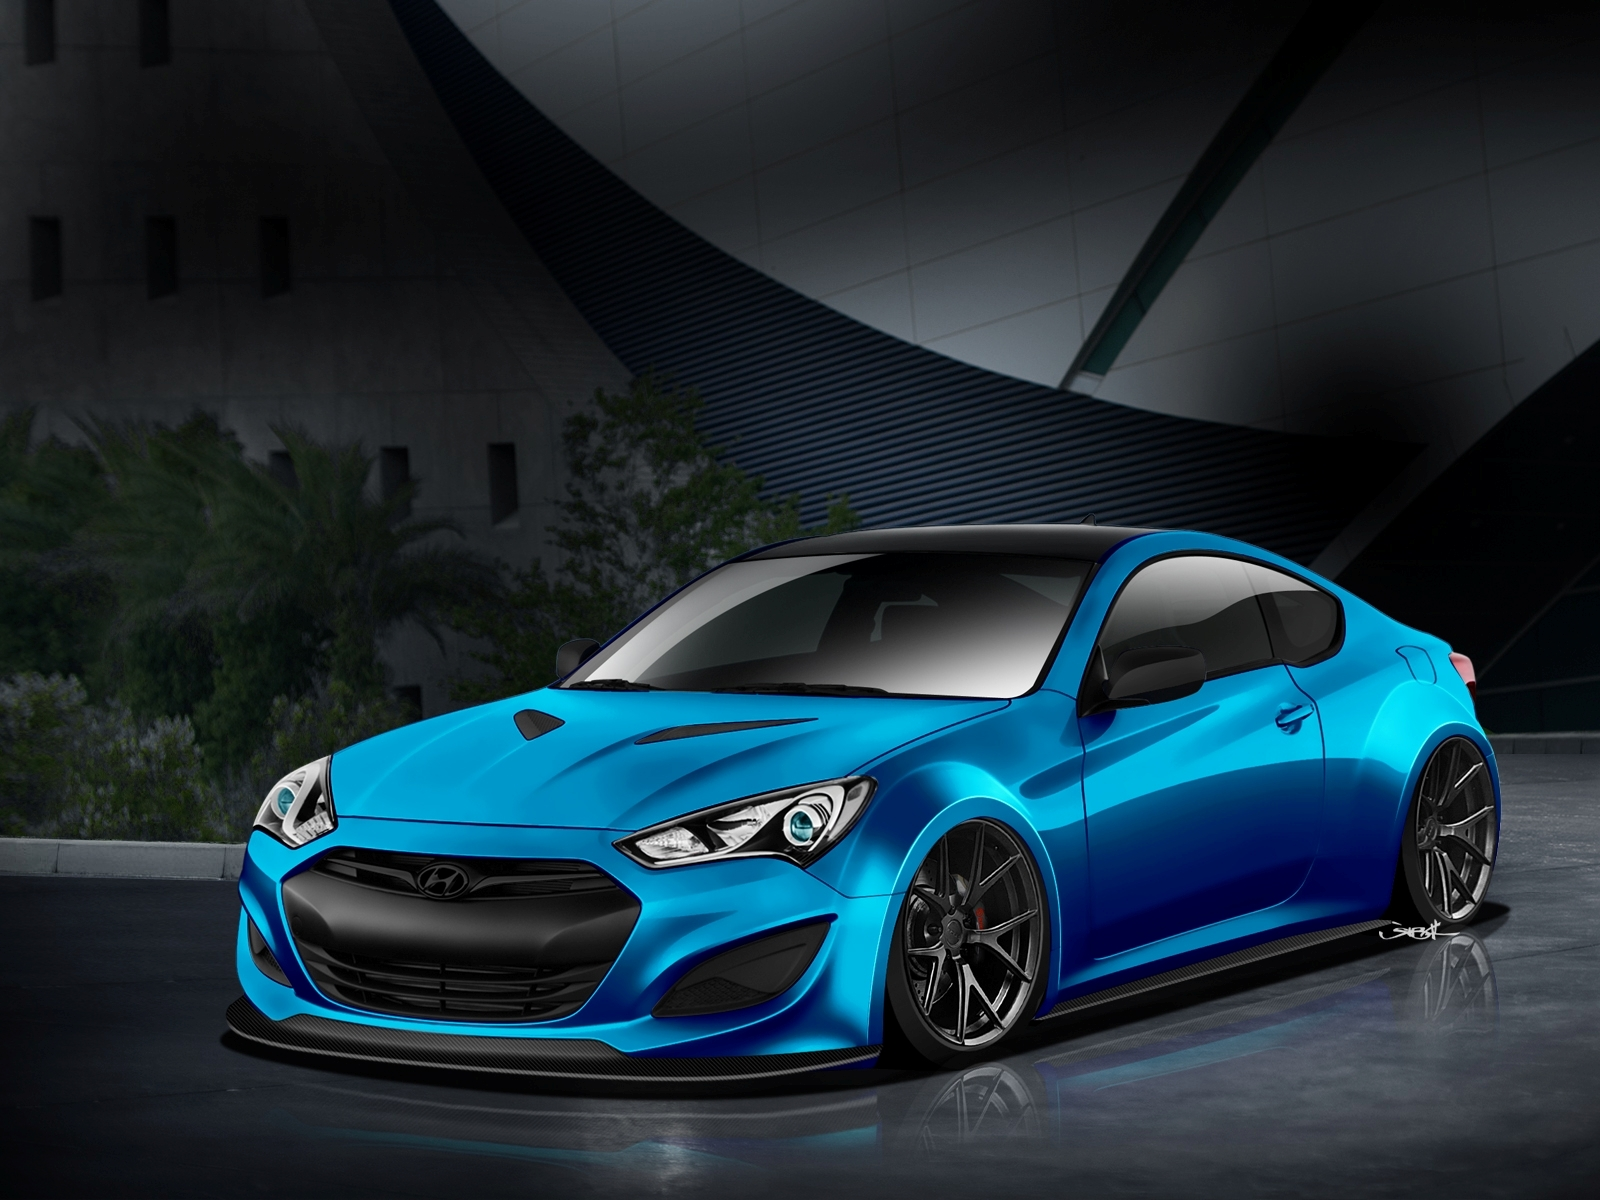 brand h be photos breaking news to sold coupe out hyundai genesis successor bows videos under